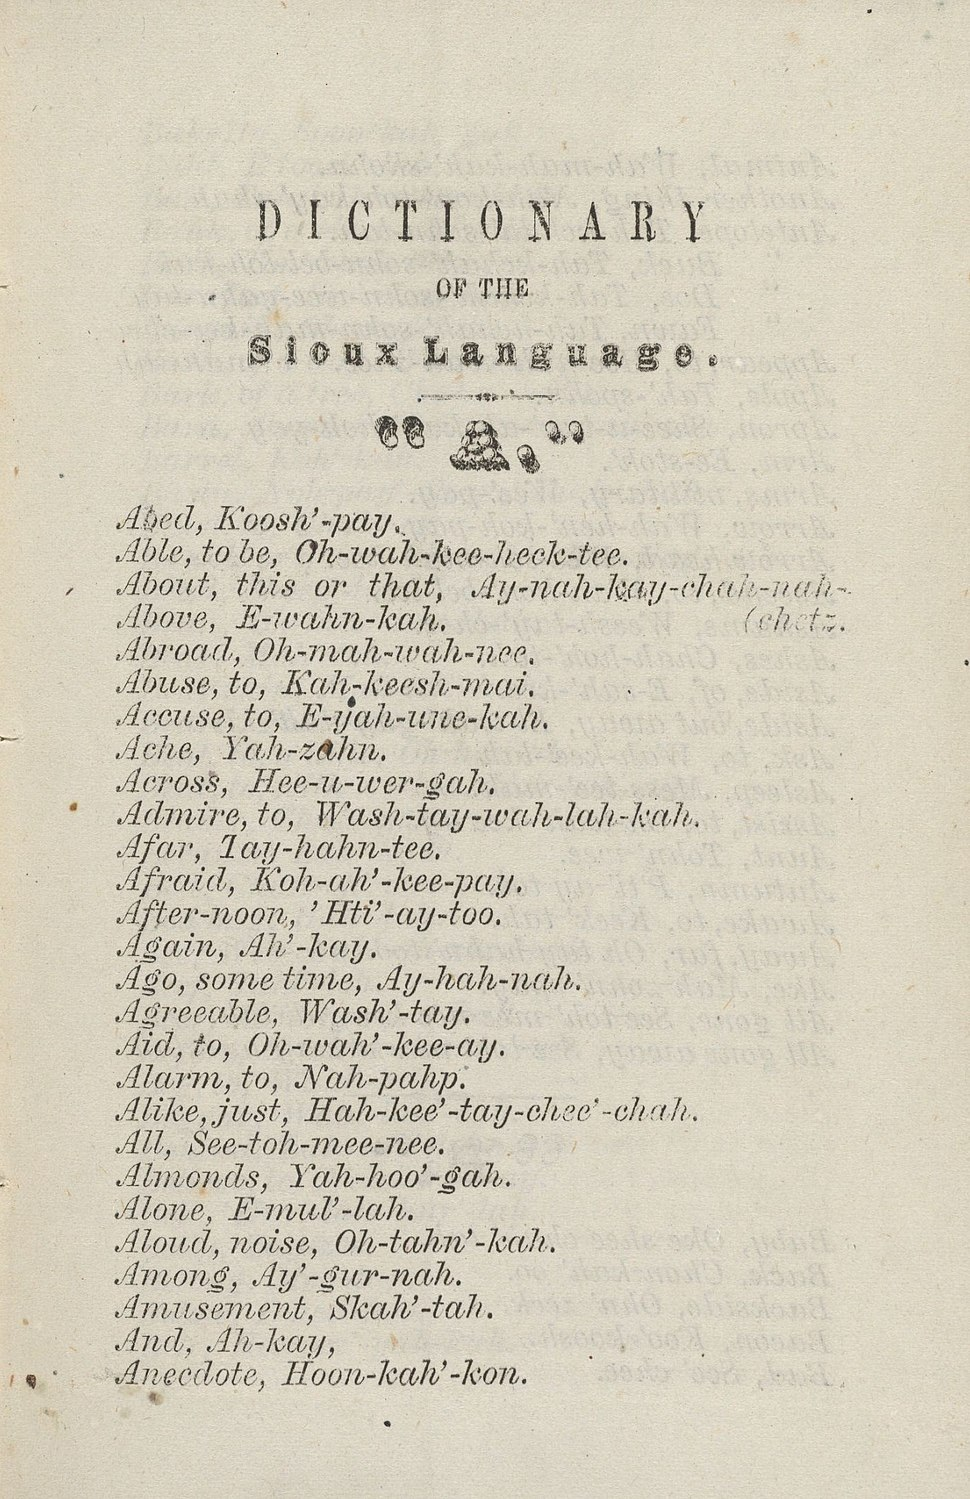 Houghton 1273.51 - Dictionary of Sioux Language, p. 3